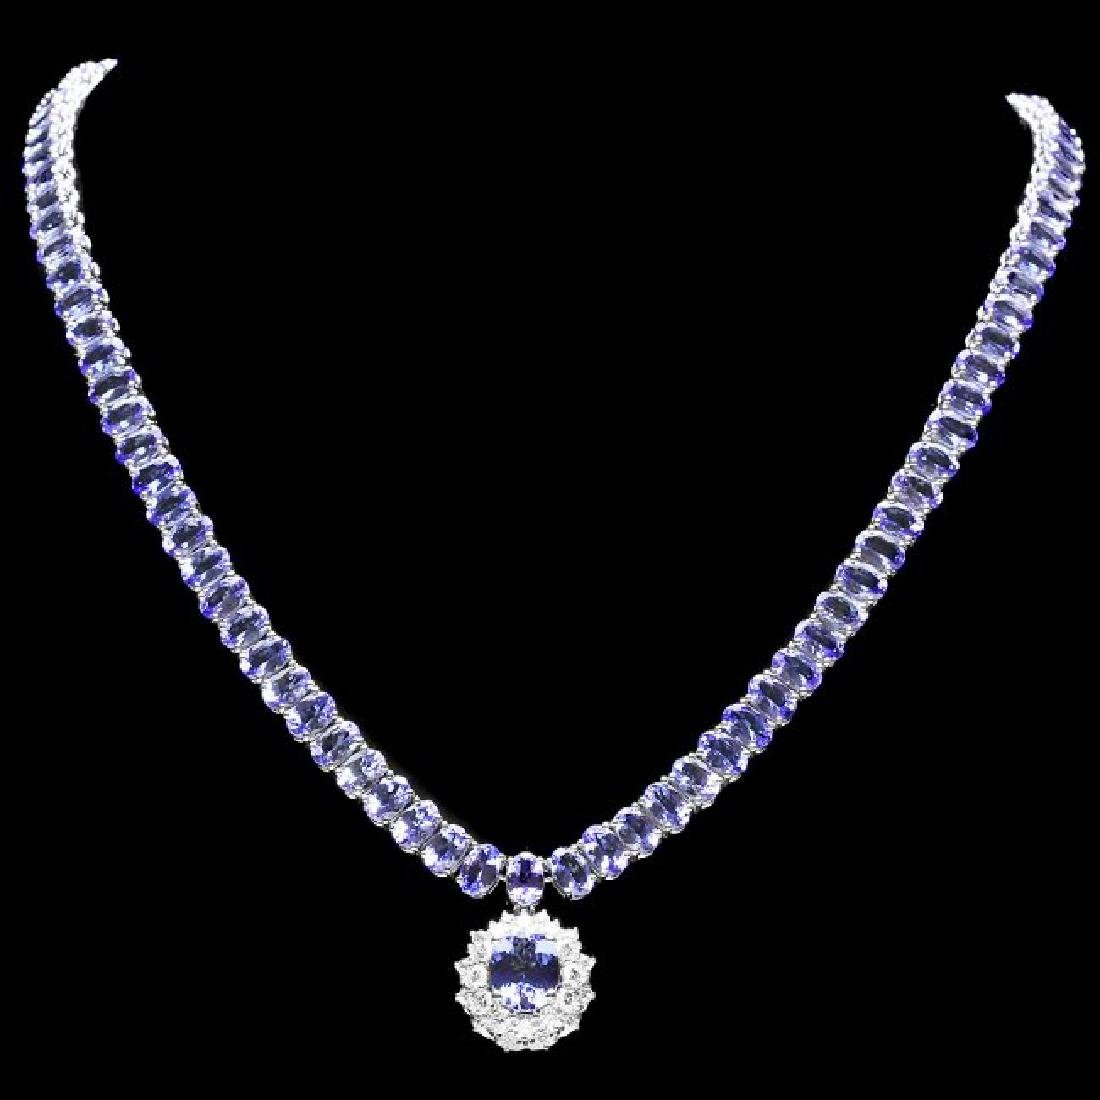 14k W Gold 45ct Tanzanite 1.35ct Diamond Necklace - 3